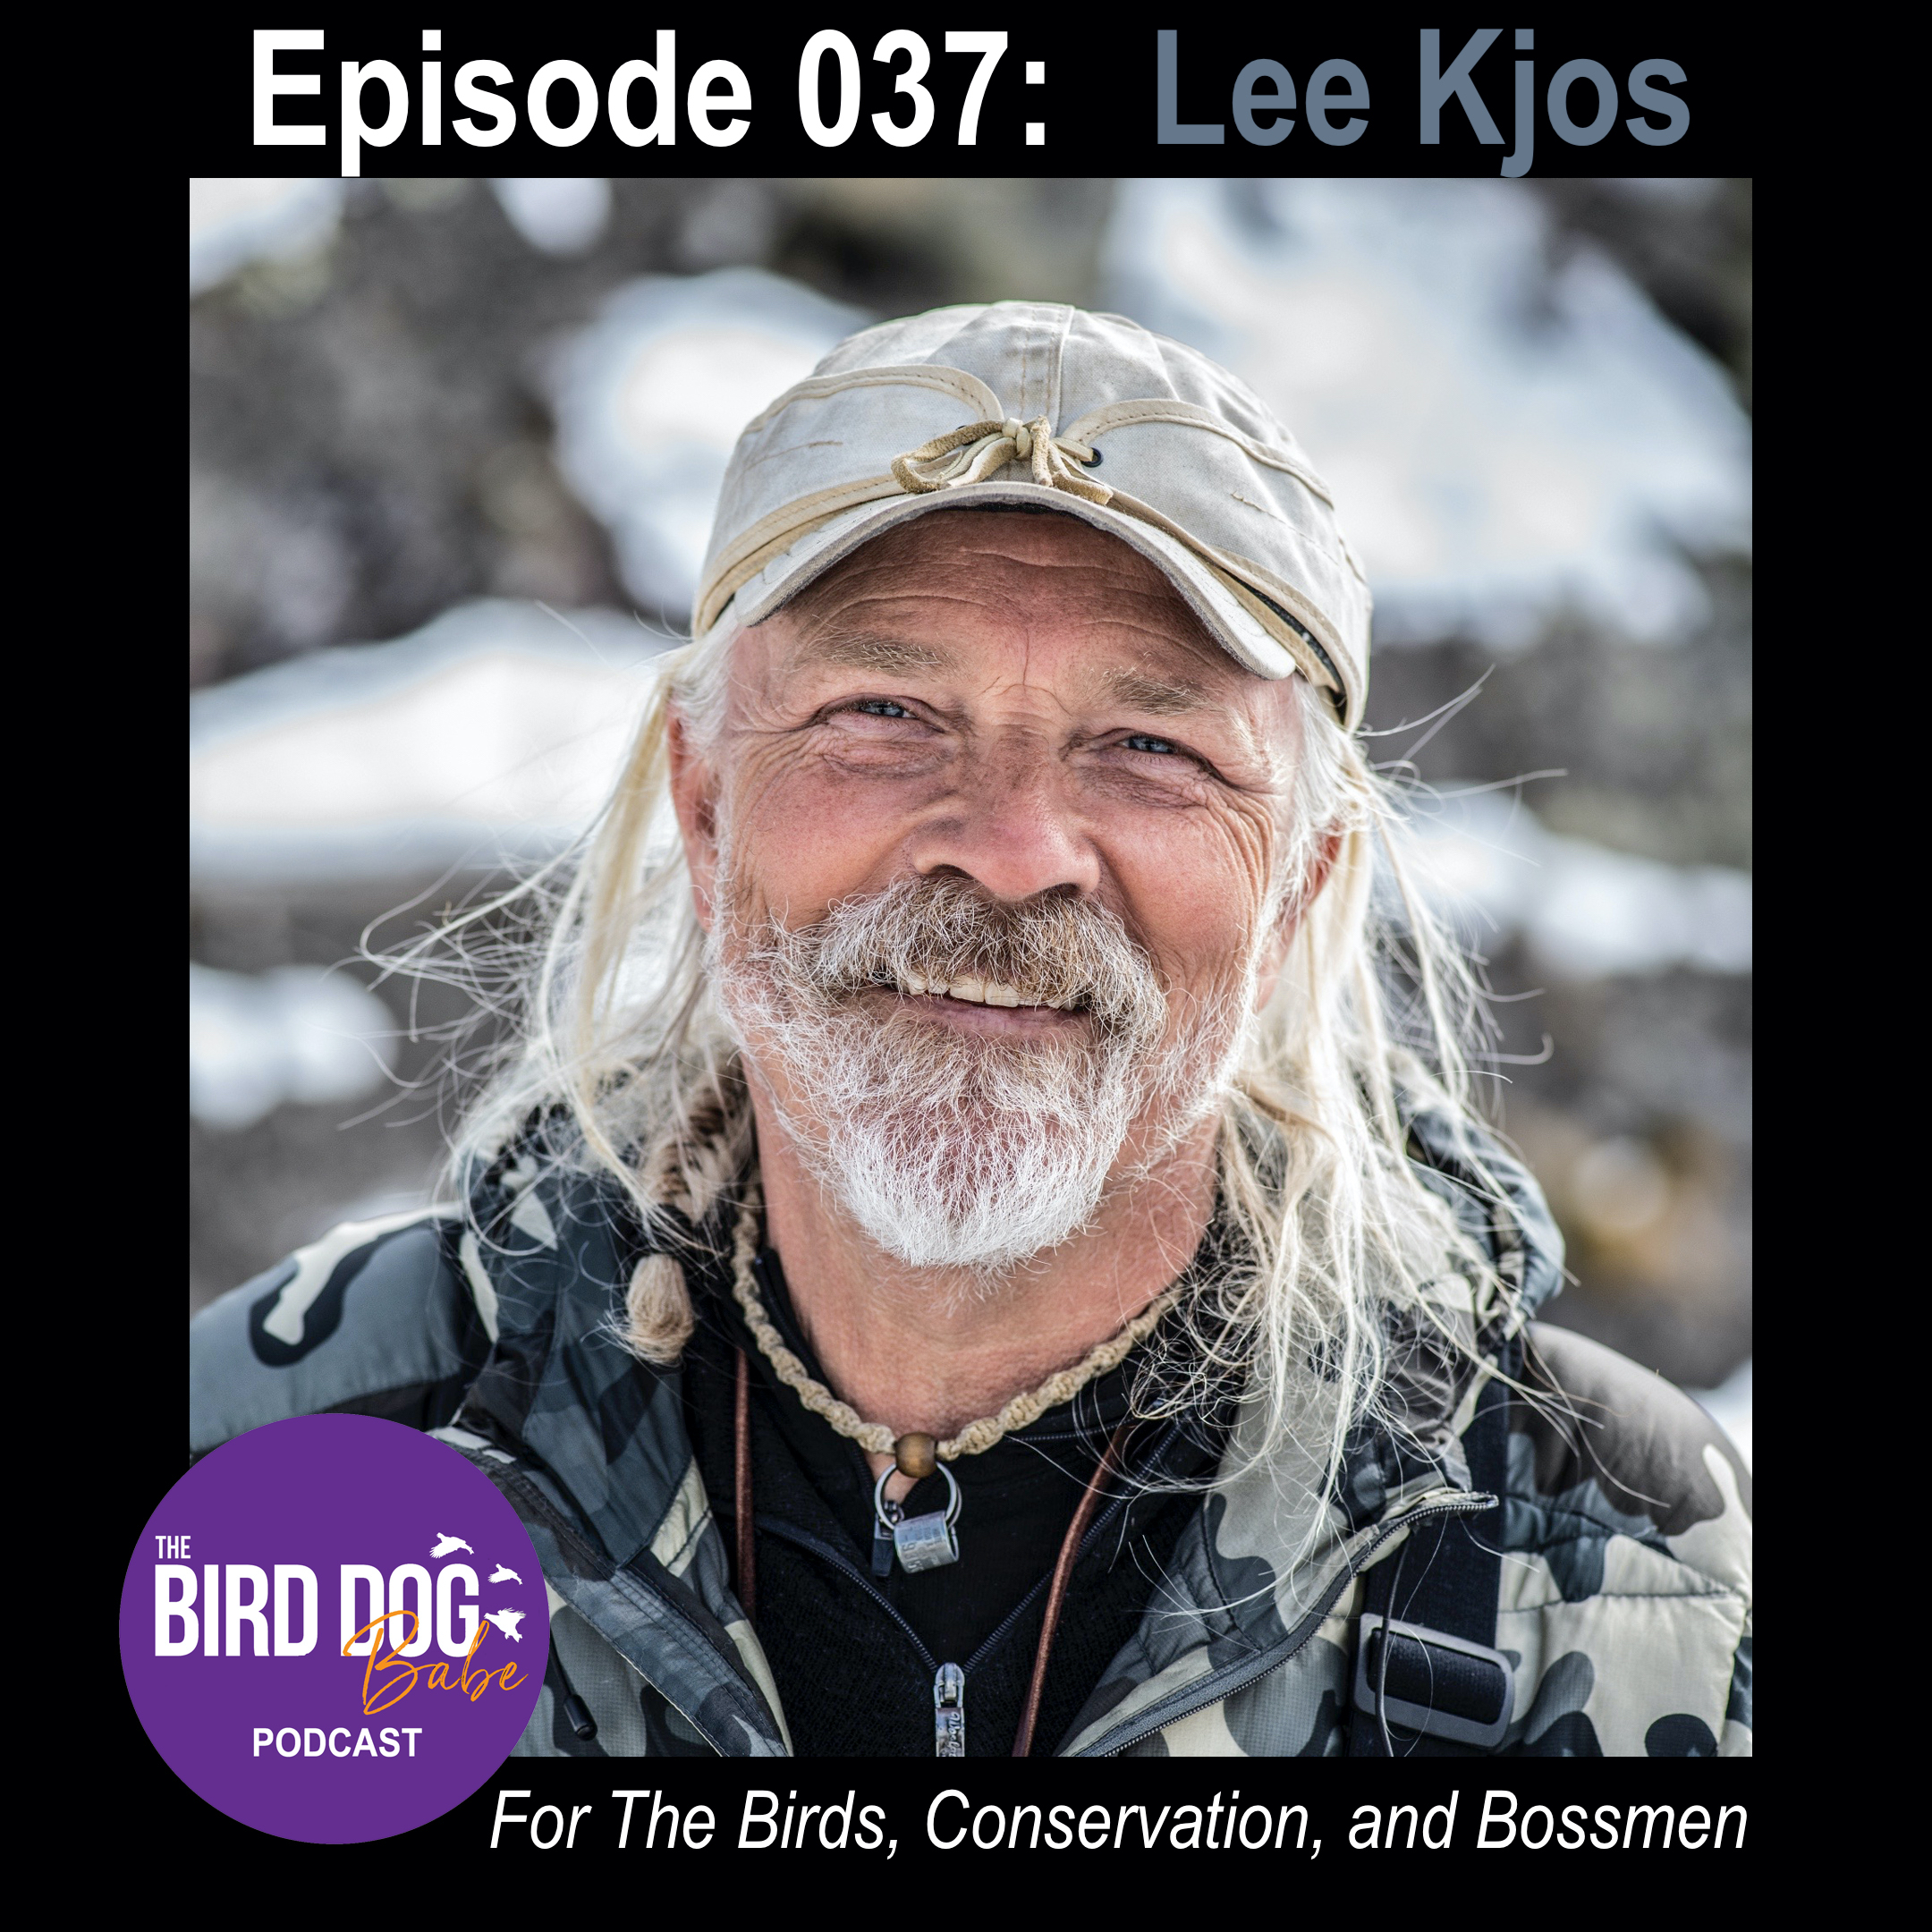 Episode 037: For the Birds, Conservation, and BossMen with Lee Kjos